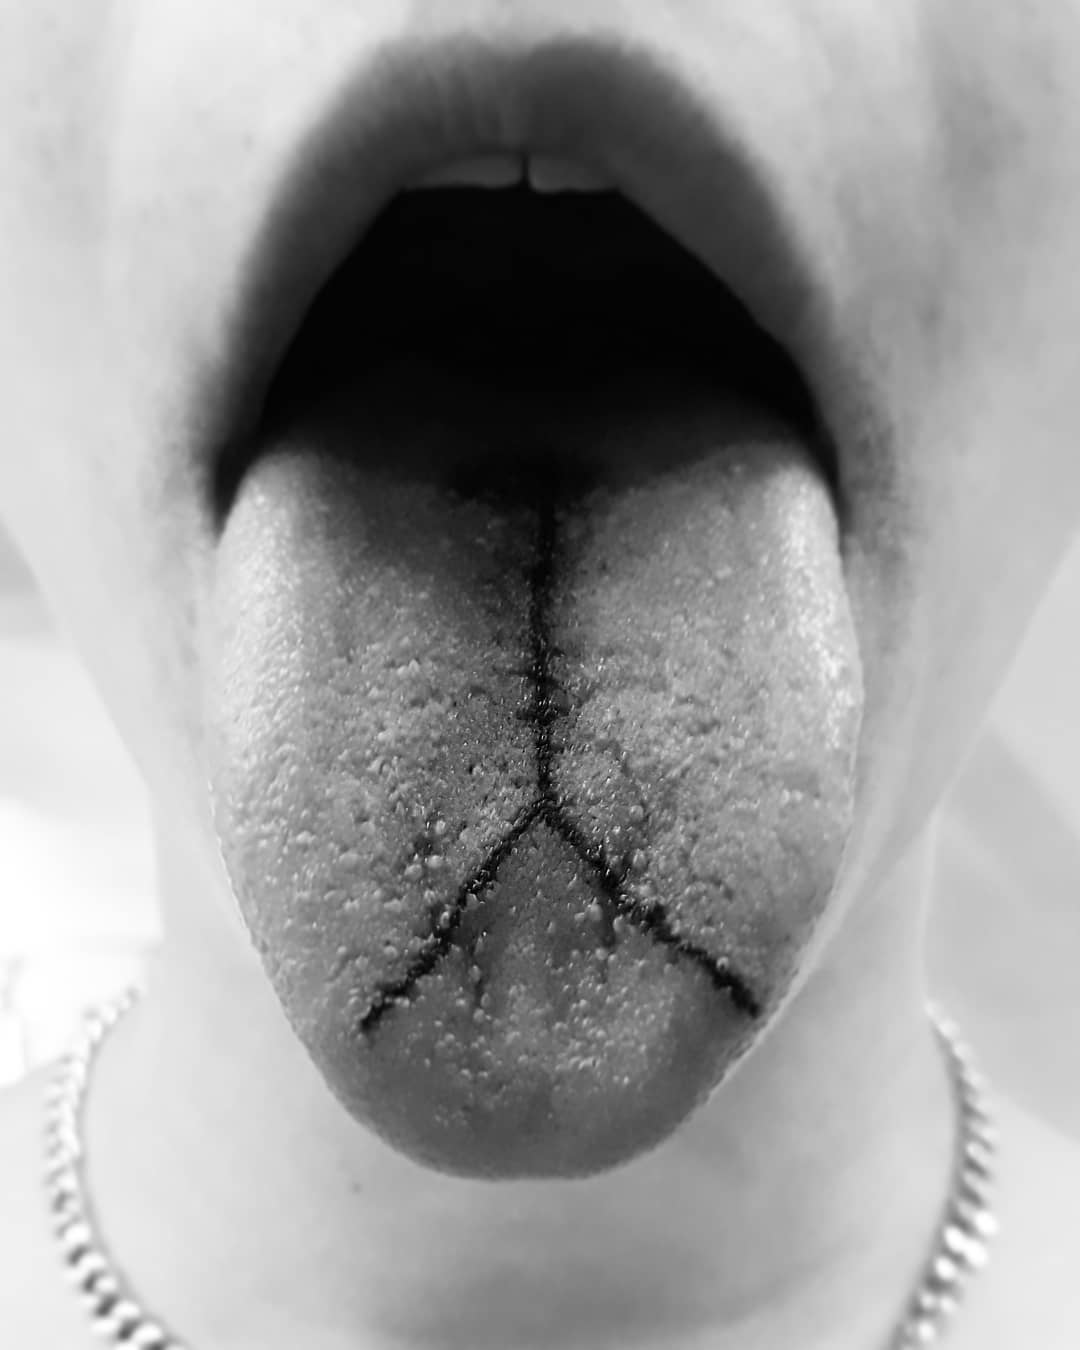 25 real tongue tattoos that we don't have a taste for